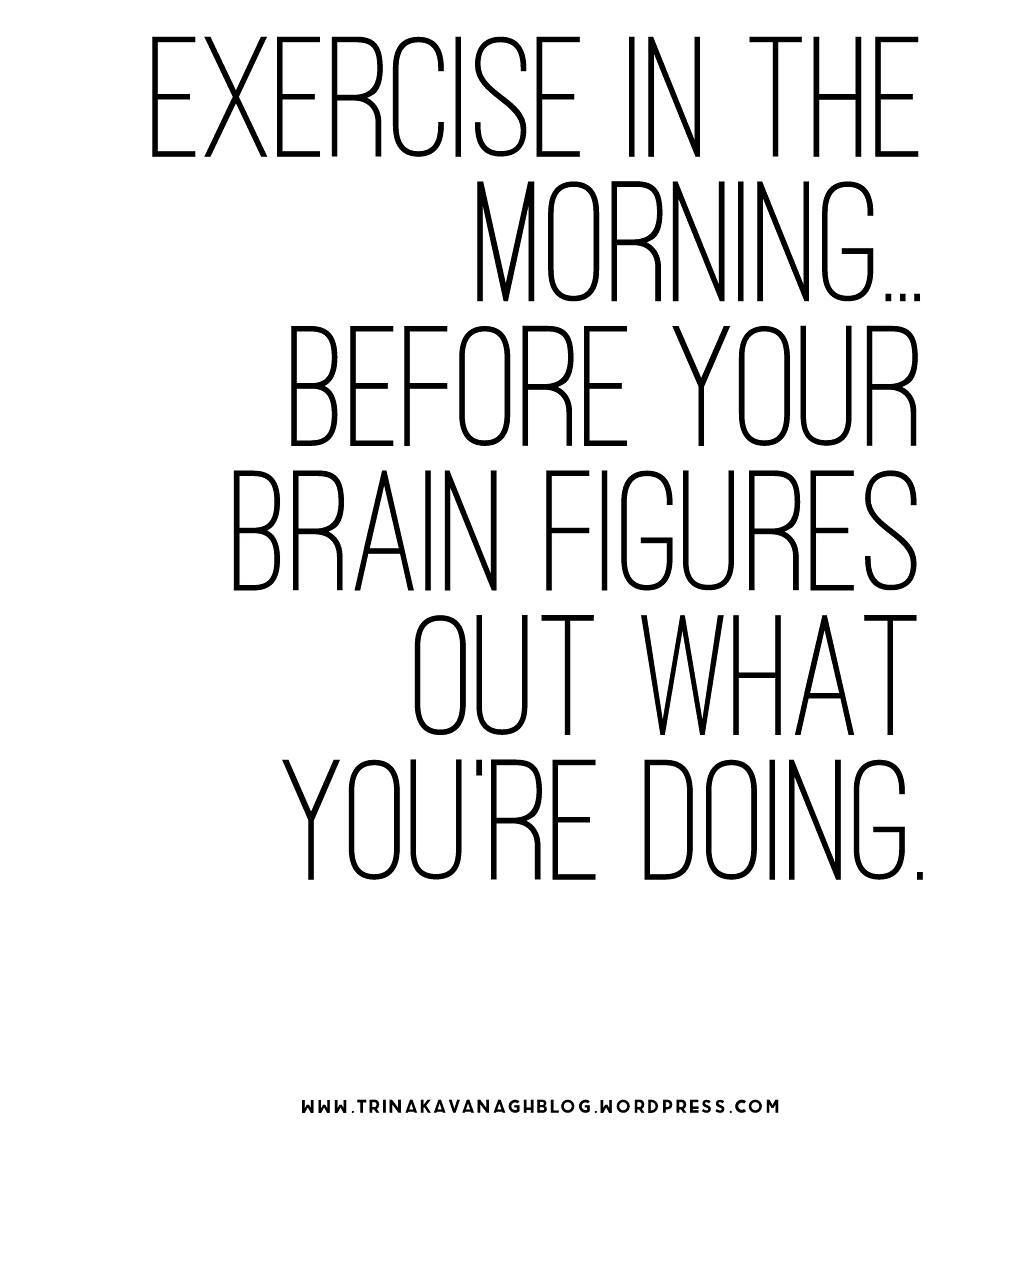 Morning Workout Quotes Monday Workout Quotes  Popsugar Fitness  Inspirational Fitness